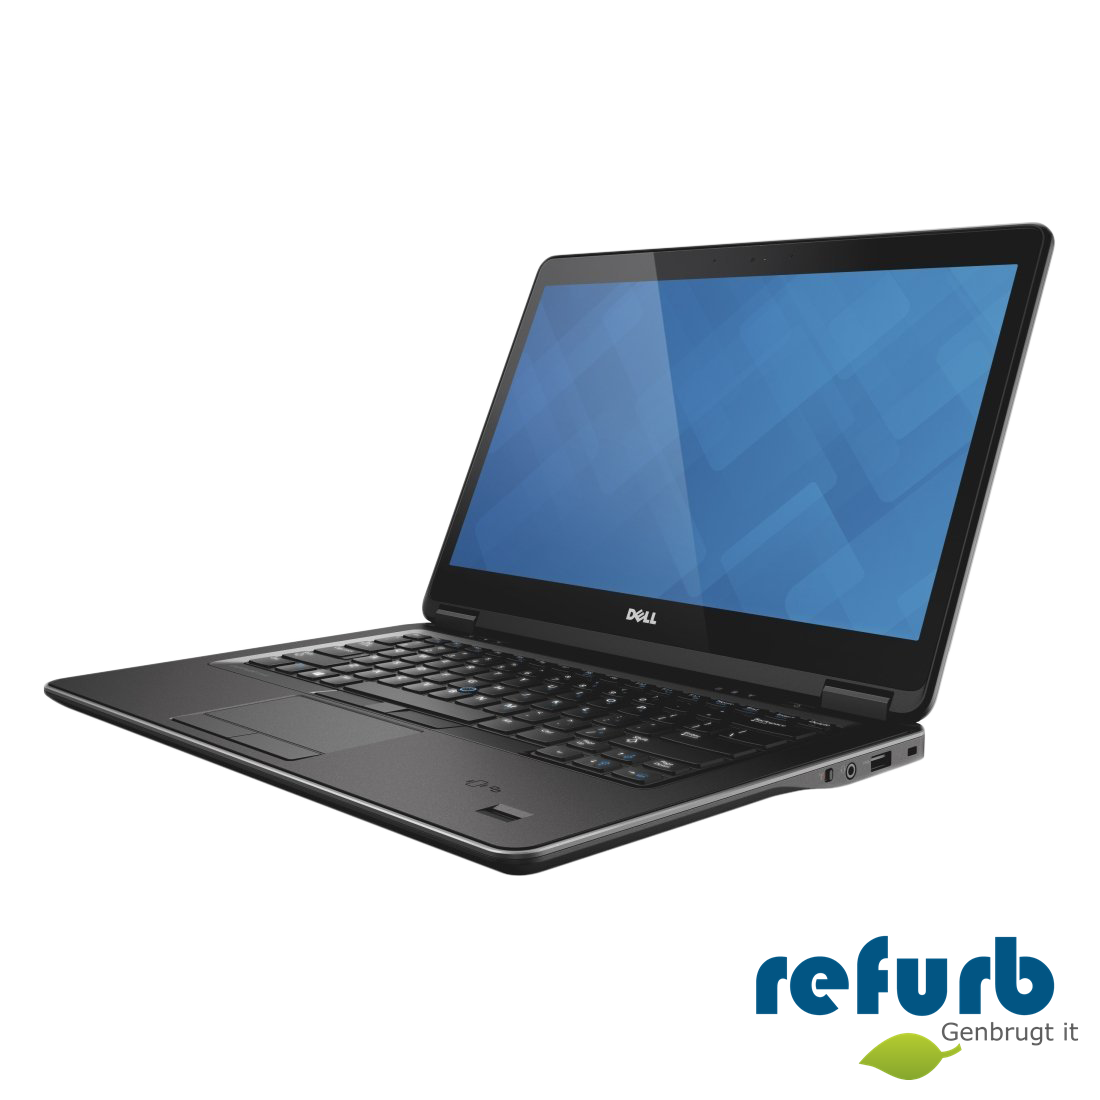 Dell Dell latitude e7440 fra refurb